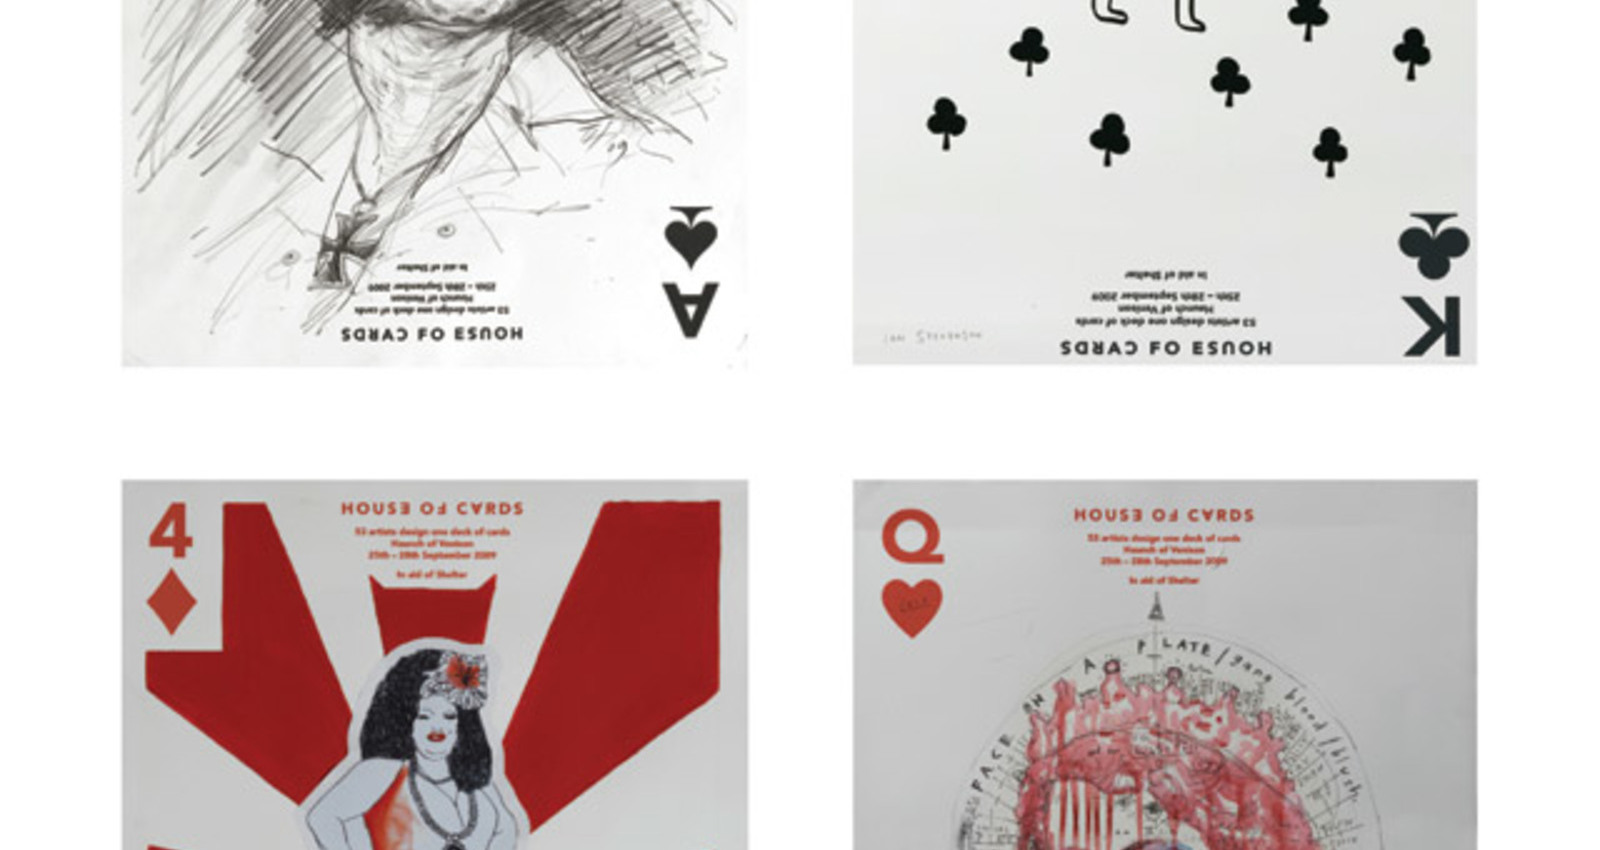 House of Cards - Live Posters